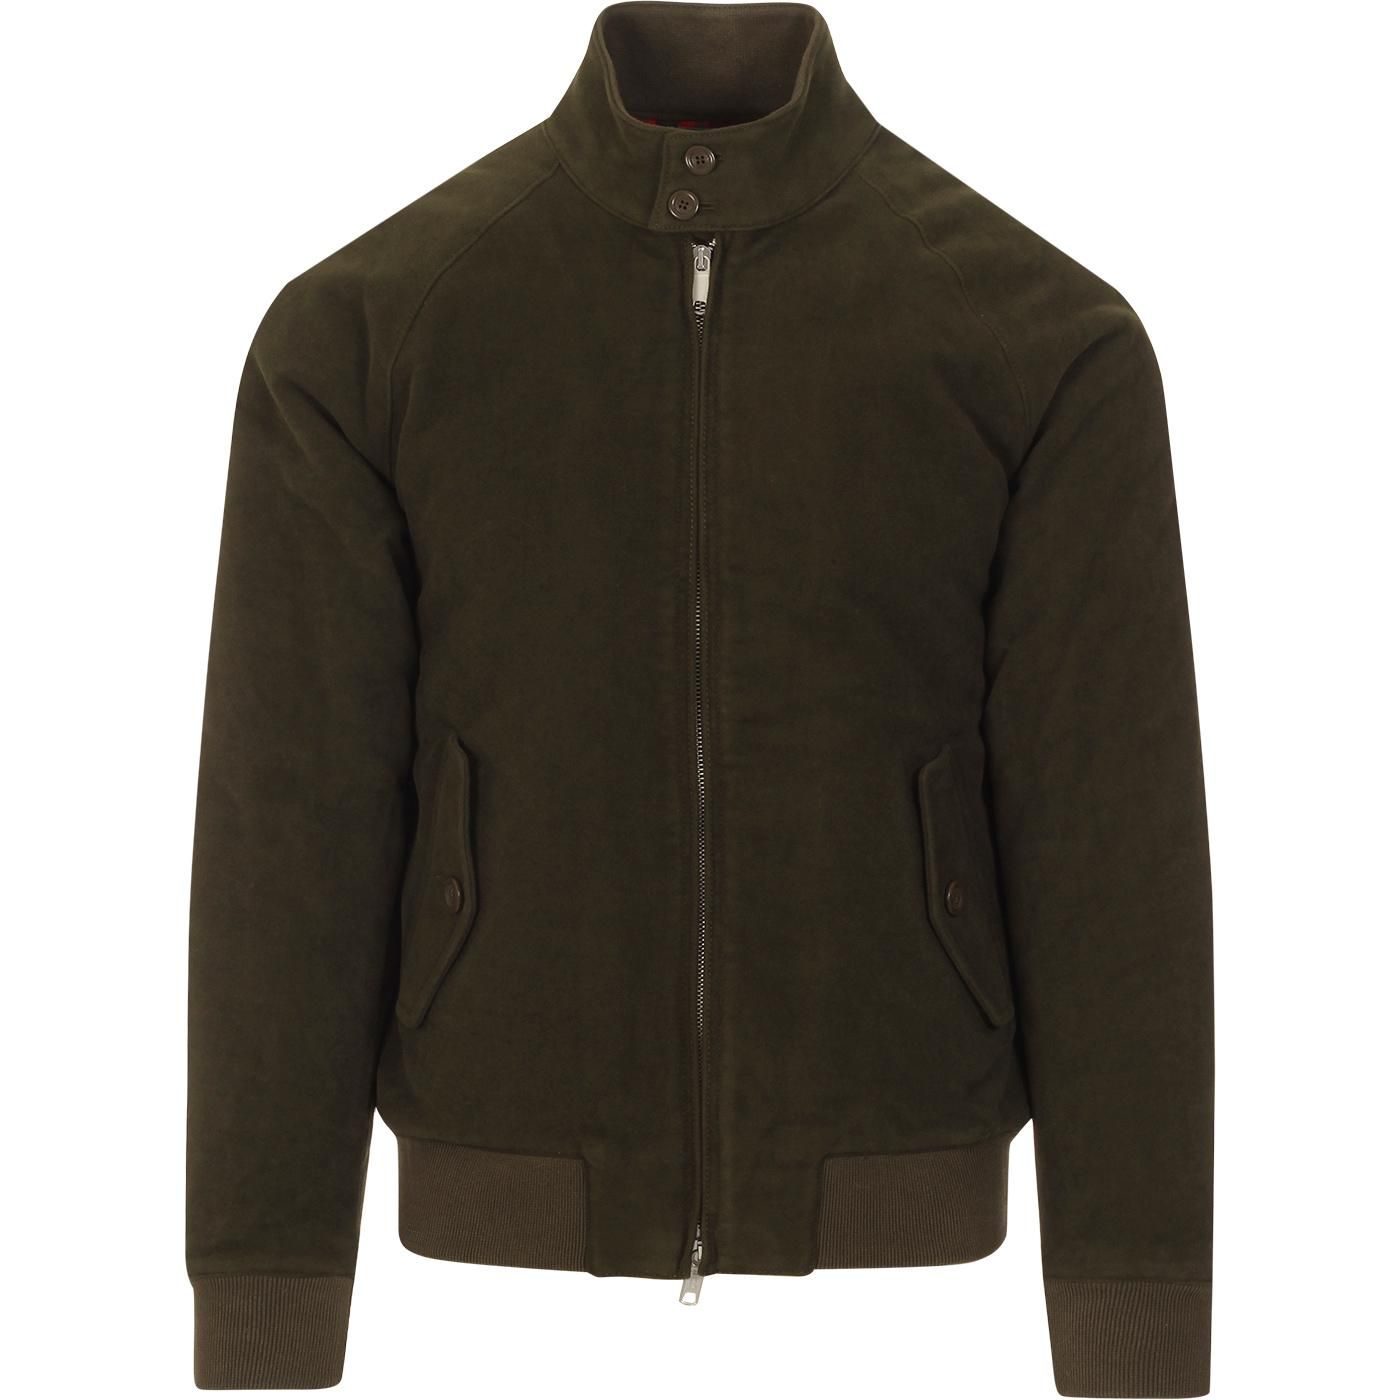 BARACUTA G9 Moleskin Mod Harrington Jacket FOREST